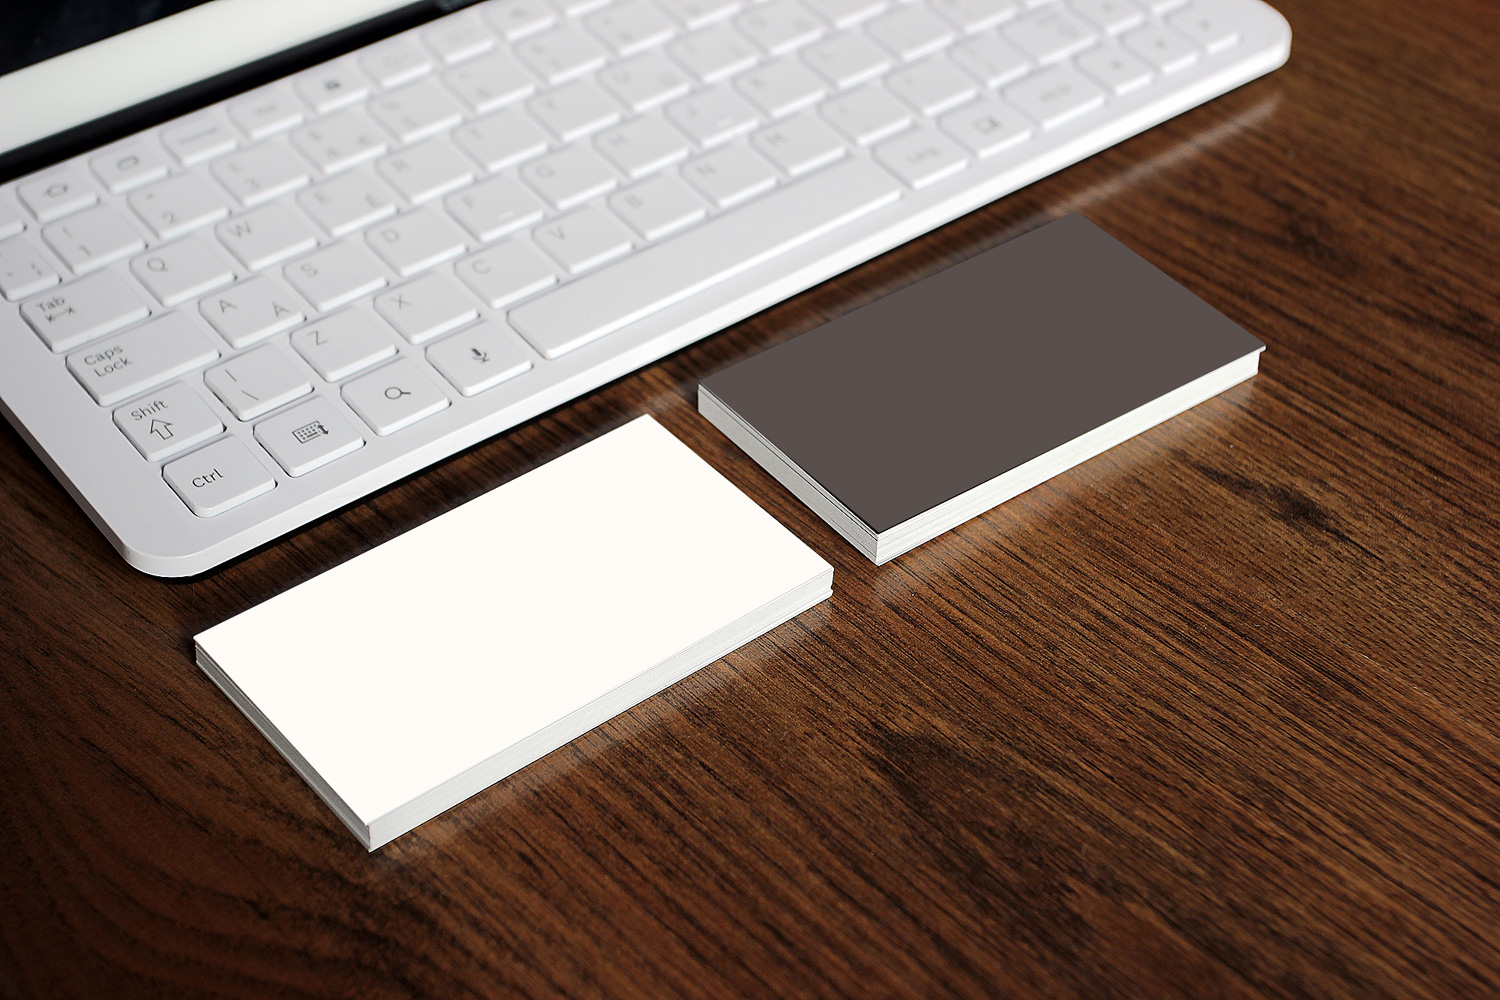 Business-Card-and-Tablet-Free-Mockup-08